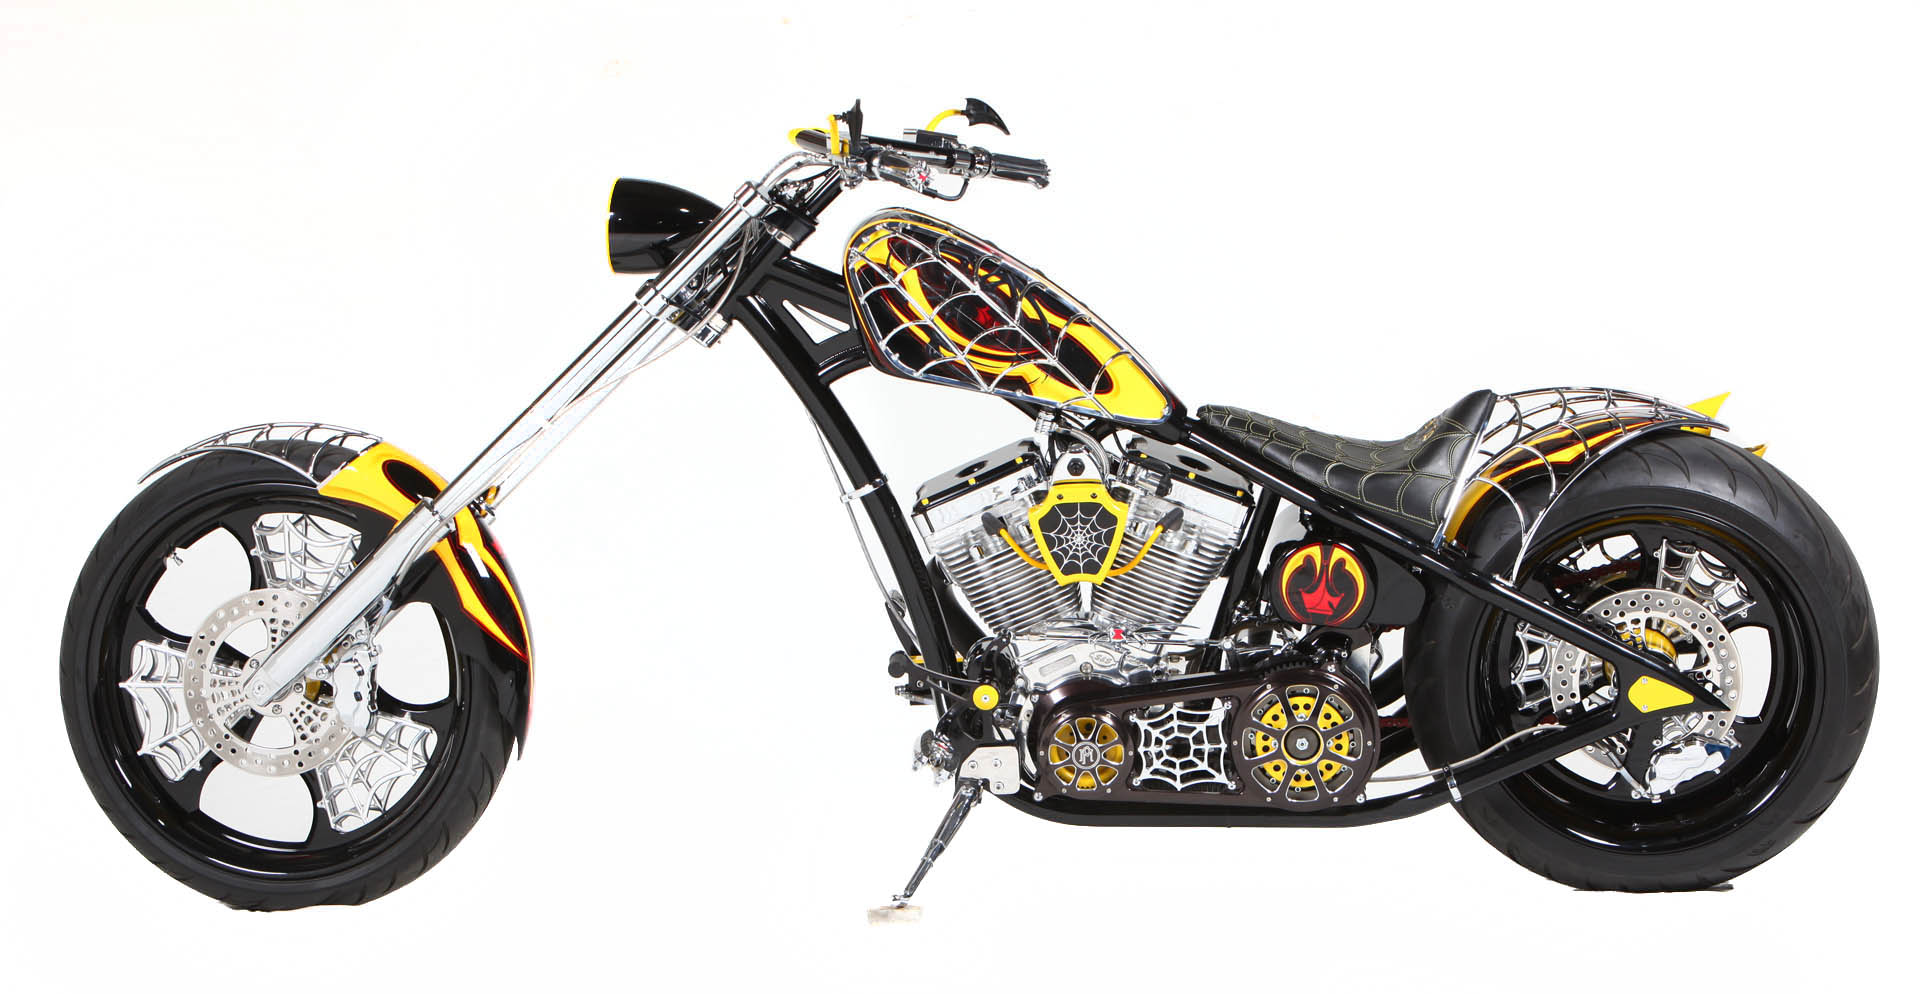 Paul Jr Anti Venom Bike